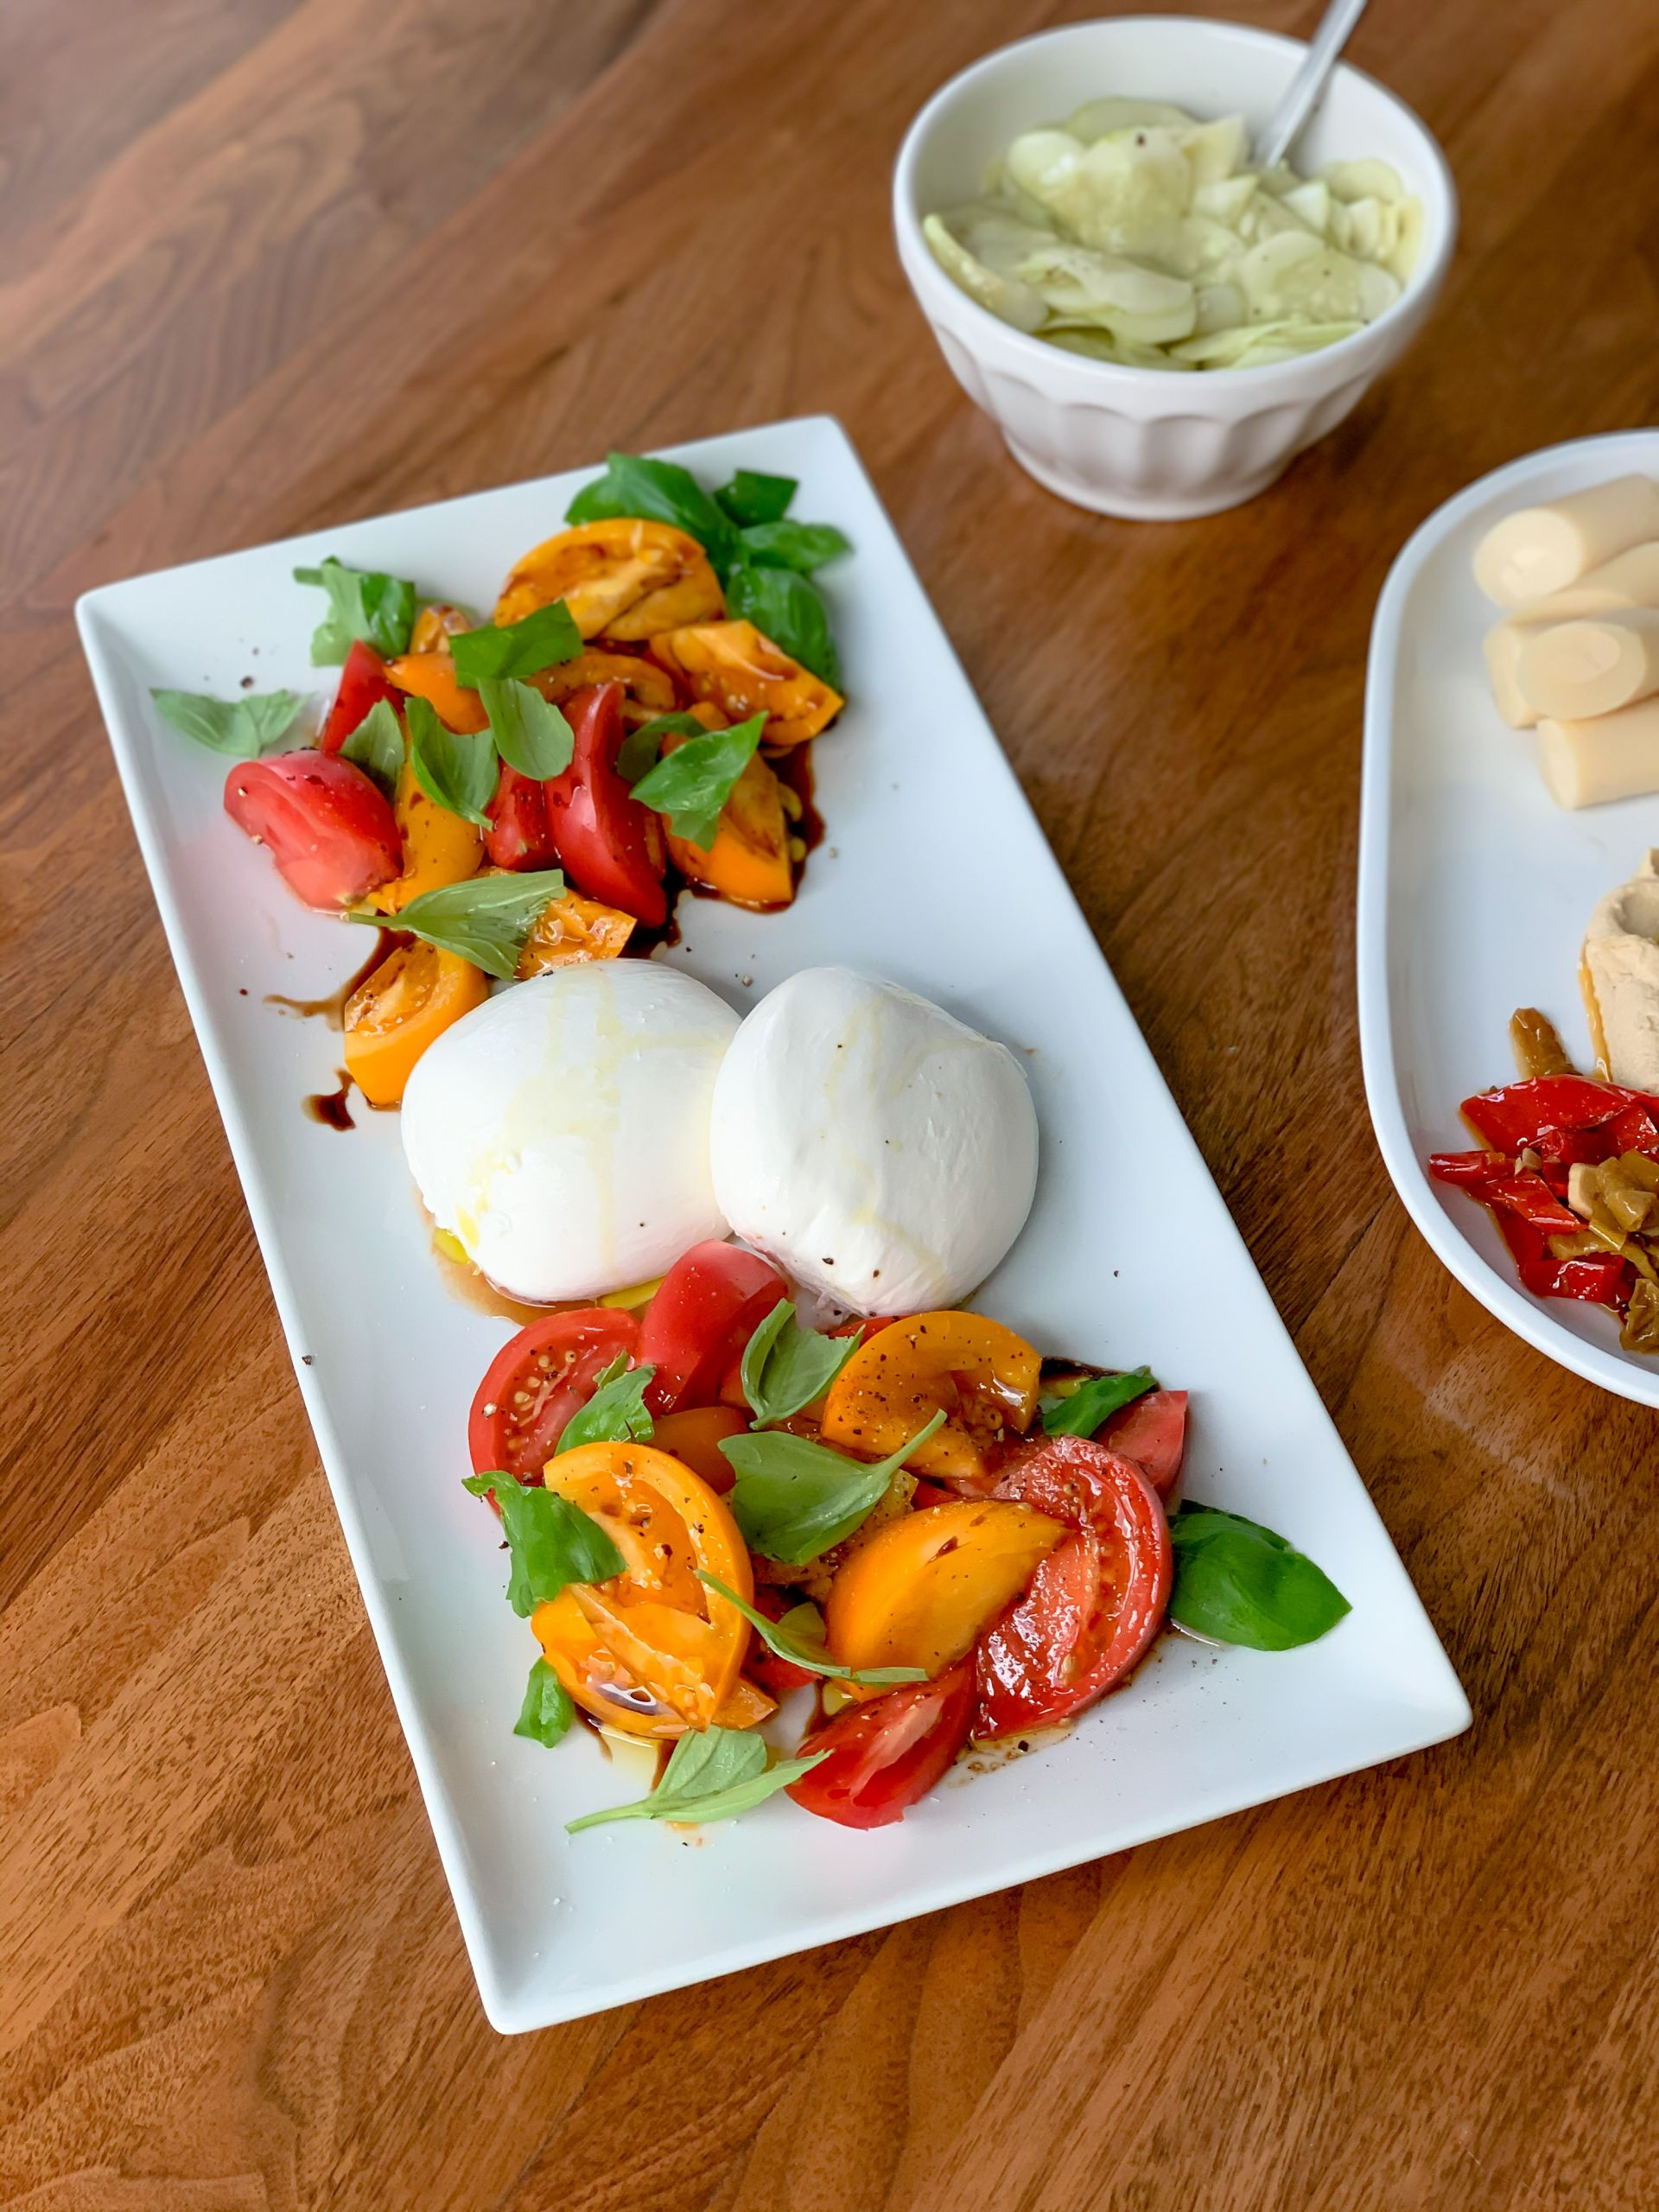 tomato salad - burrata - summer salad Inspiration - Lauren Schwaiger Healthy Lifestyle Blog